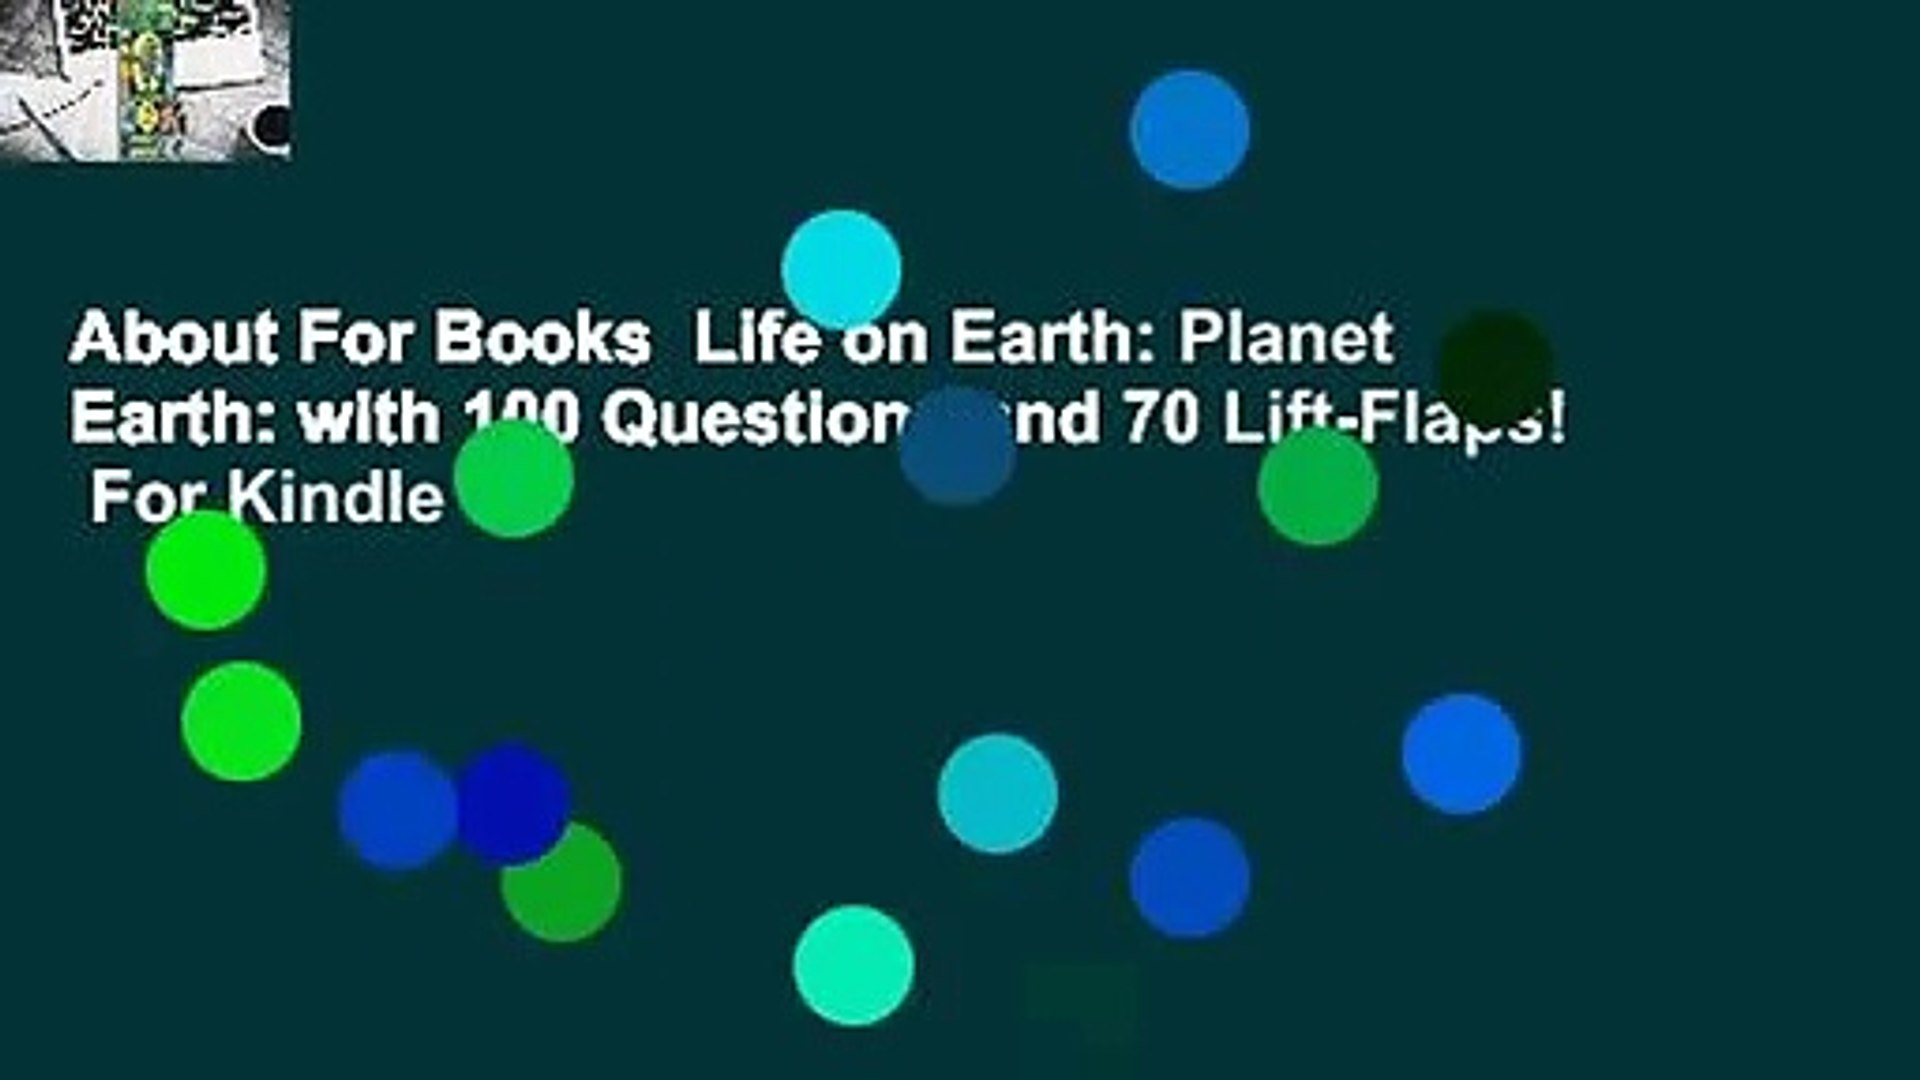 About For Books  Life on Earth: Planet Earth: with 100 Questions and 70 Lift-Flaps!  For Kindle